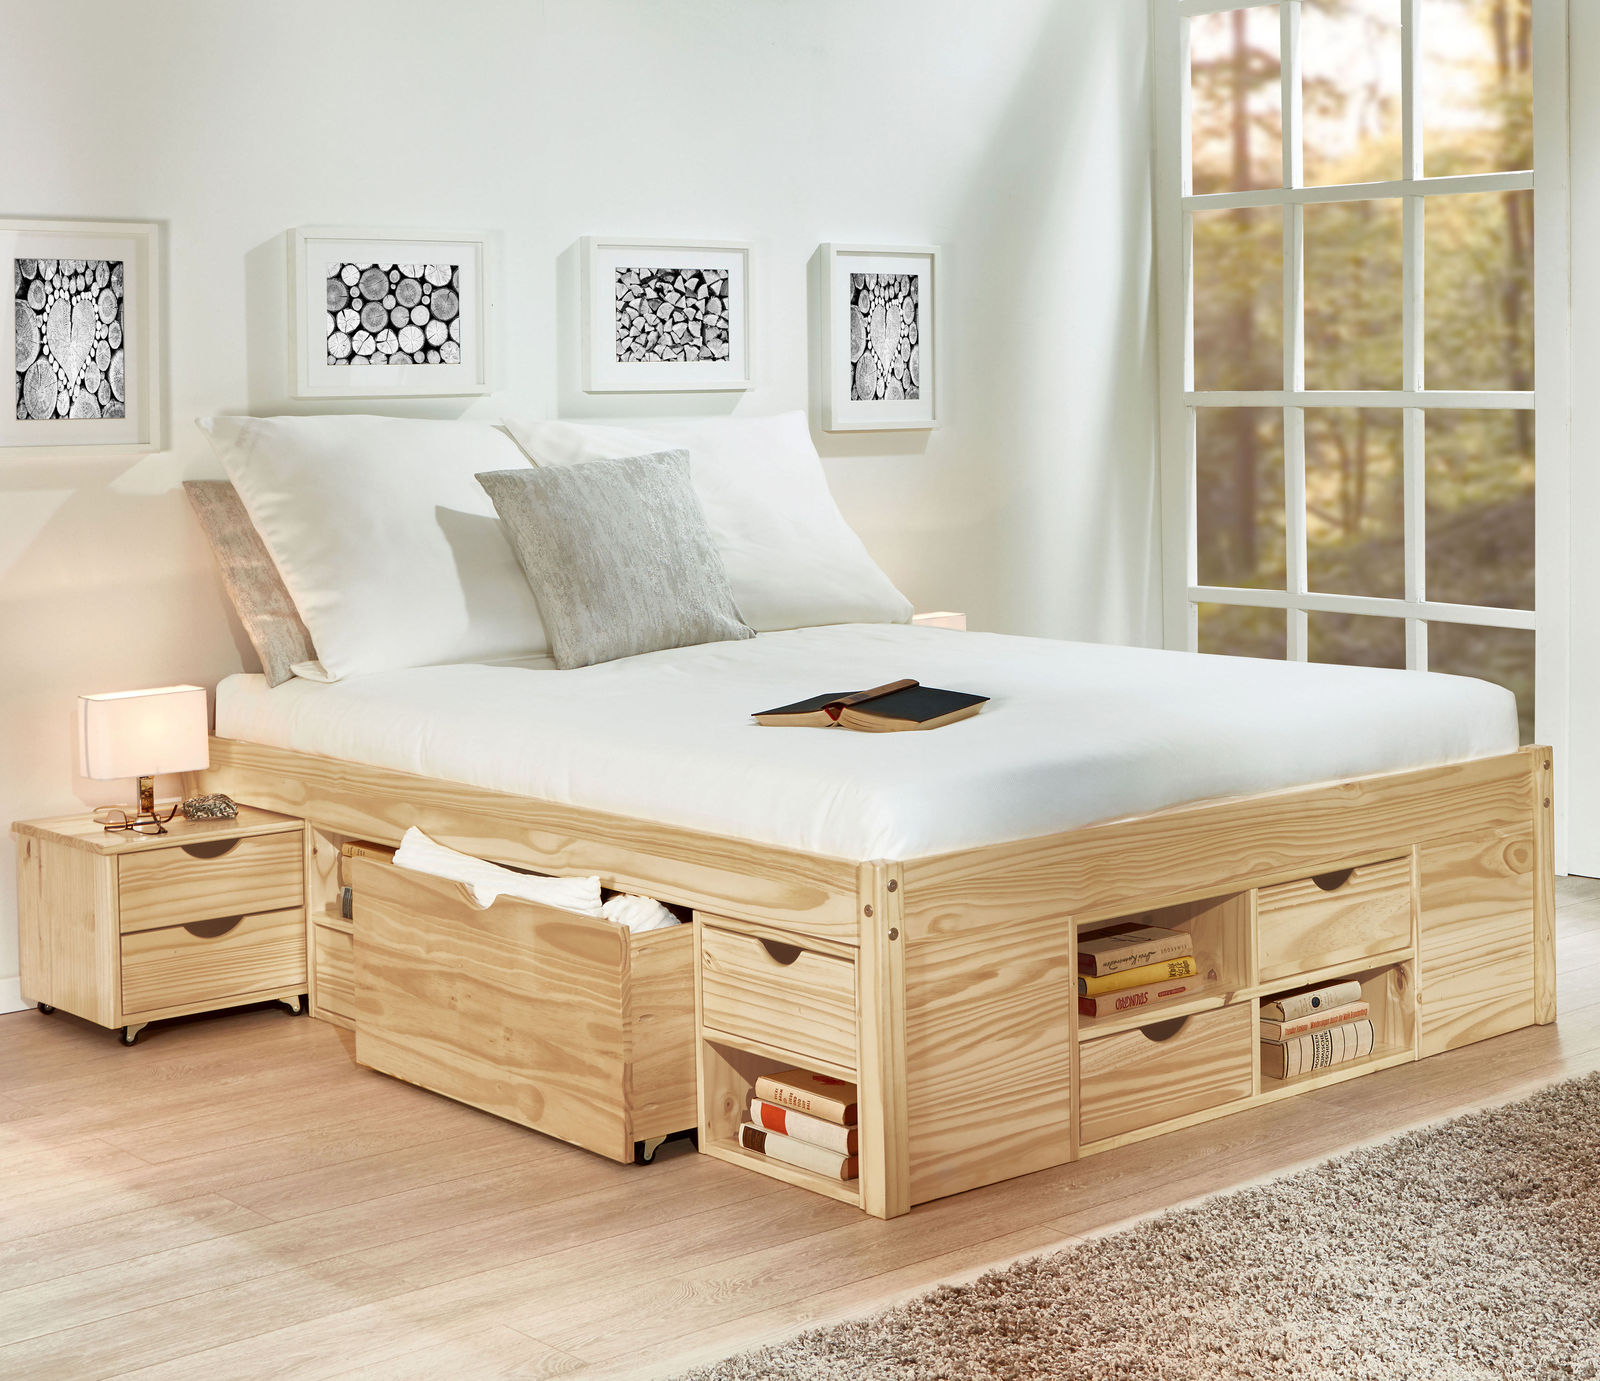 schubkasten doppelbett mit viel stauraum bett oslo. Black Bedroom Furniture Sets. Home Design Ideas